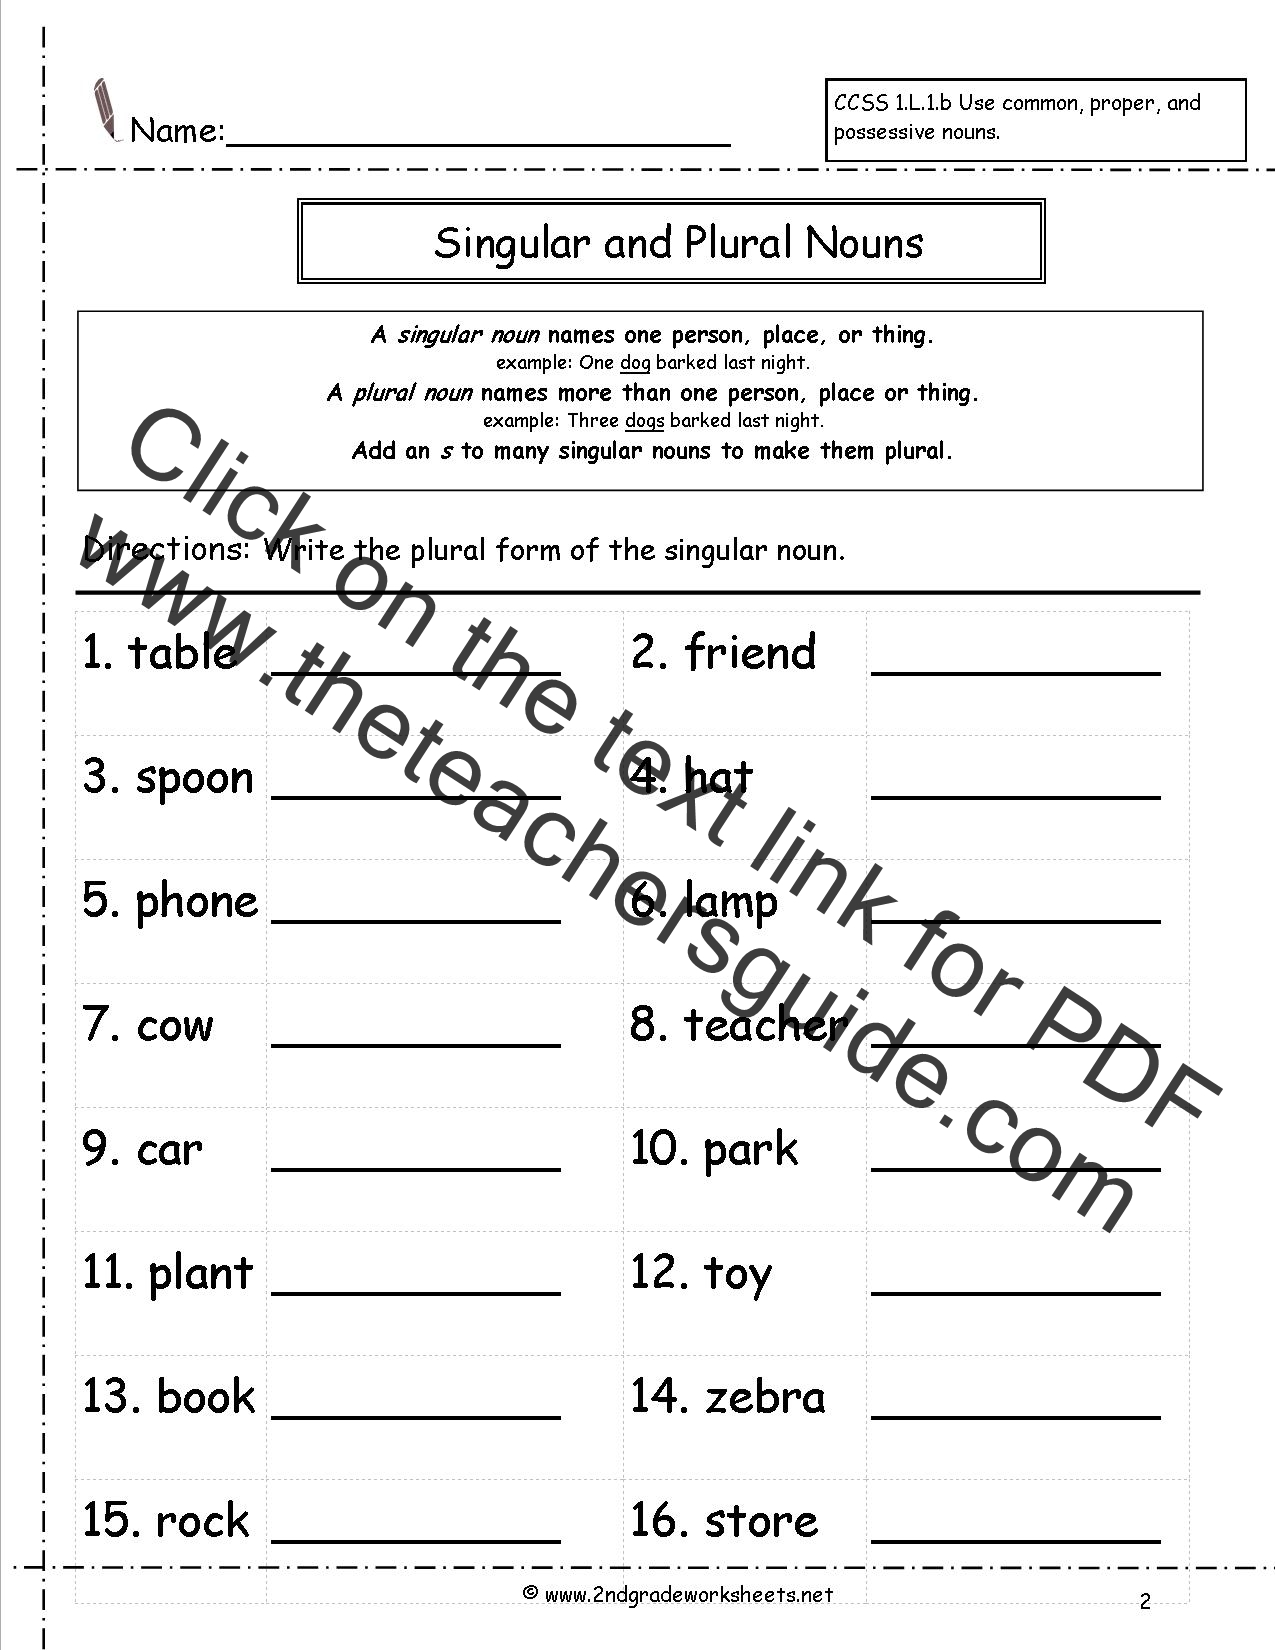 Printables Singular And Plural Nouns Worksheet singular and plural nouns worksheets worksheet